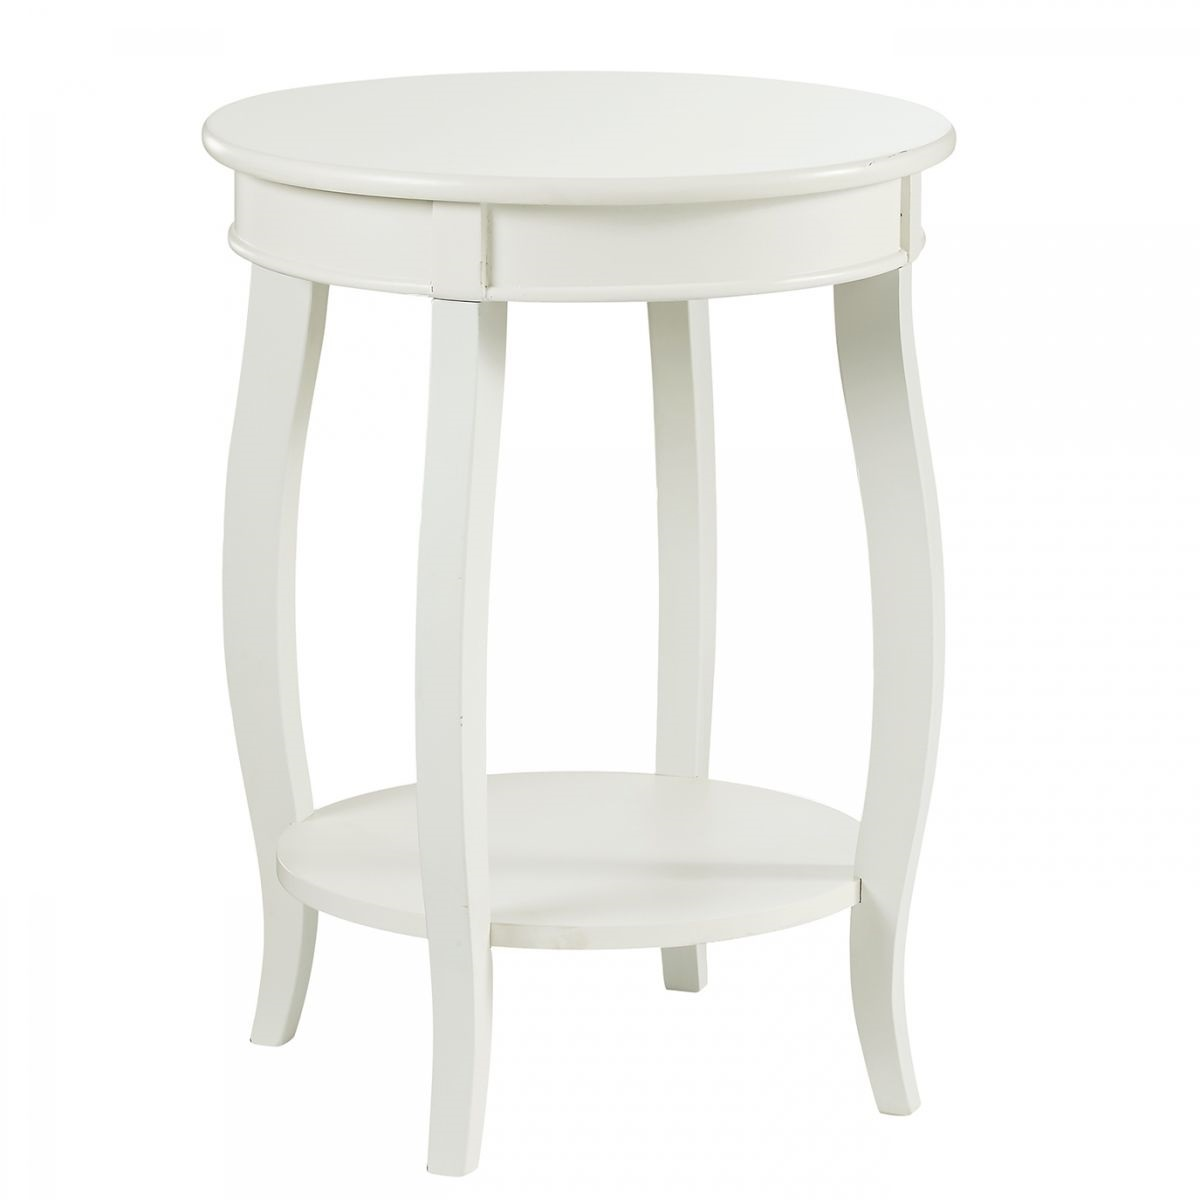 rainbow white round accent table badcock more ture home furniture design red cover marble top bistro plastic patio end tables person square dining nautical bedside lamps solid box